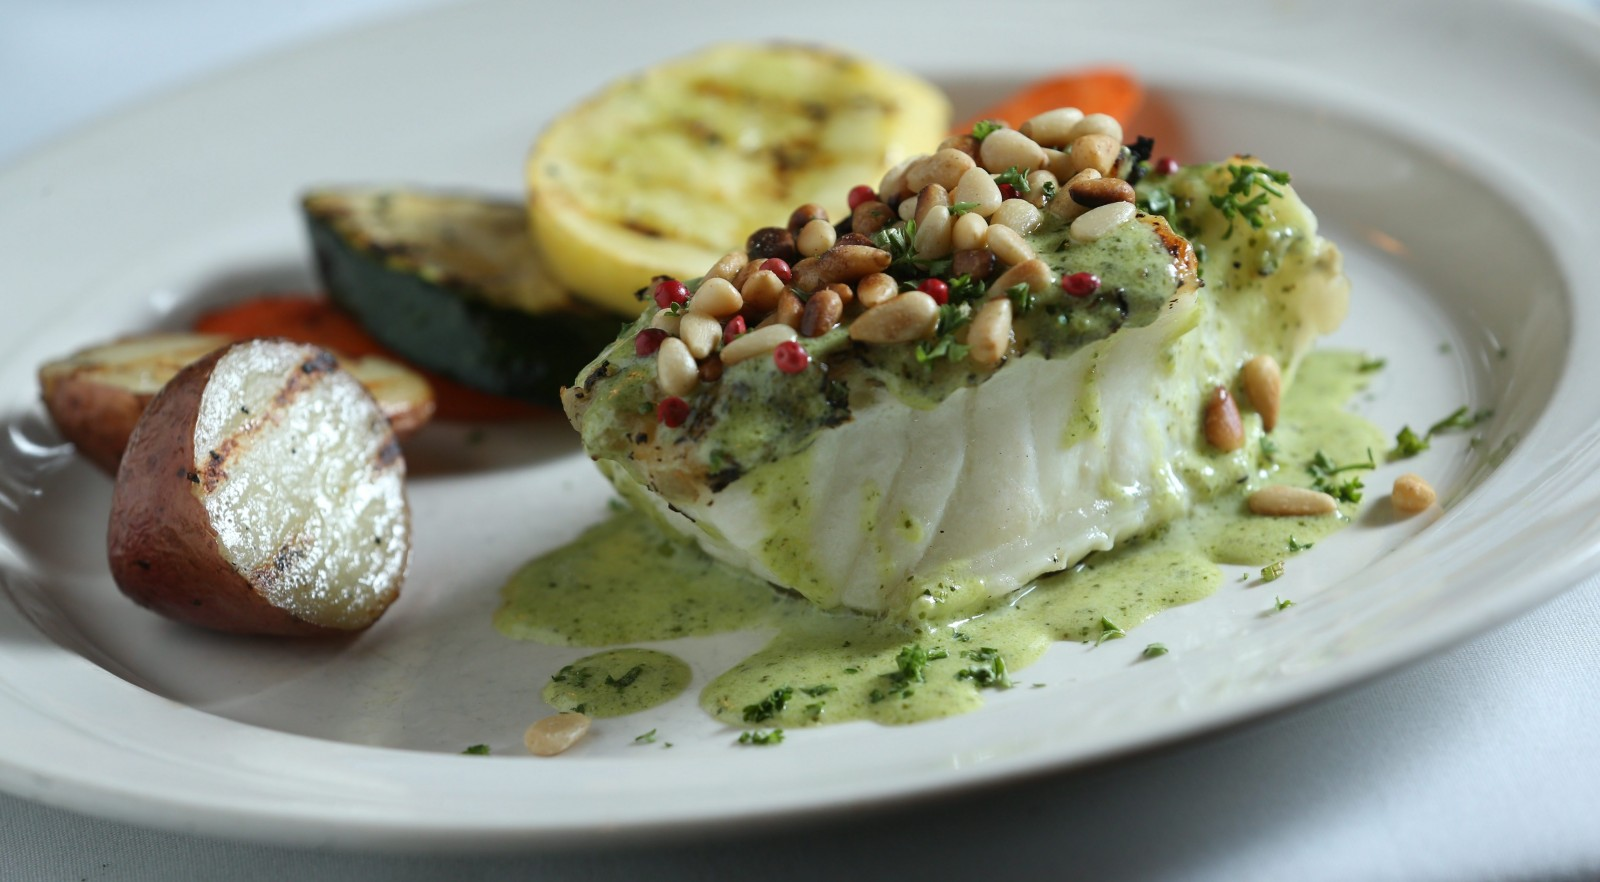 San Marco's sea bass is pan-seared with white wine, lemon and herbs, finished on the grill and topped with a creamy pesto sauce. (Sharon Cantillon/Buffalo News)